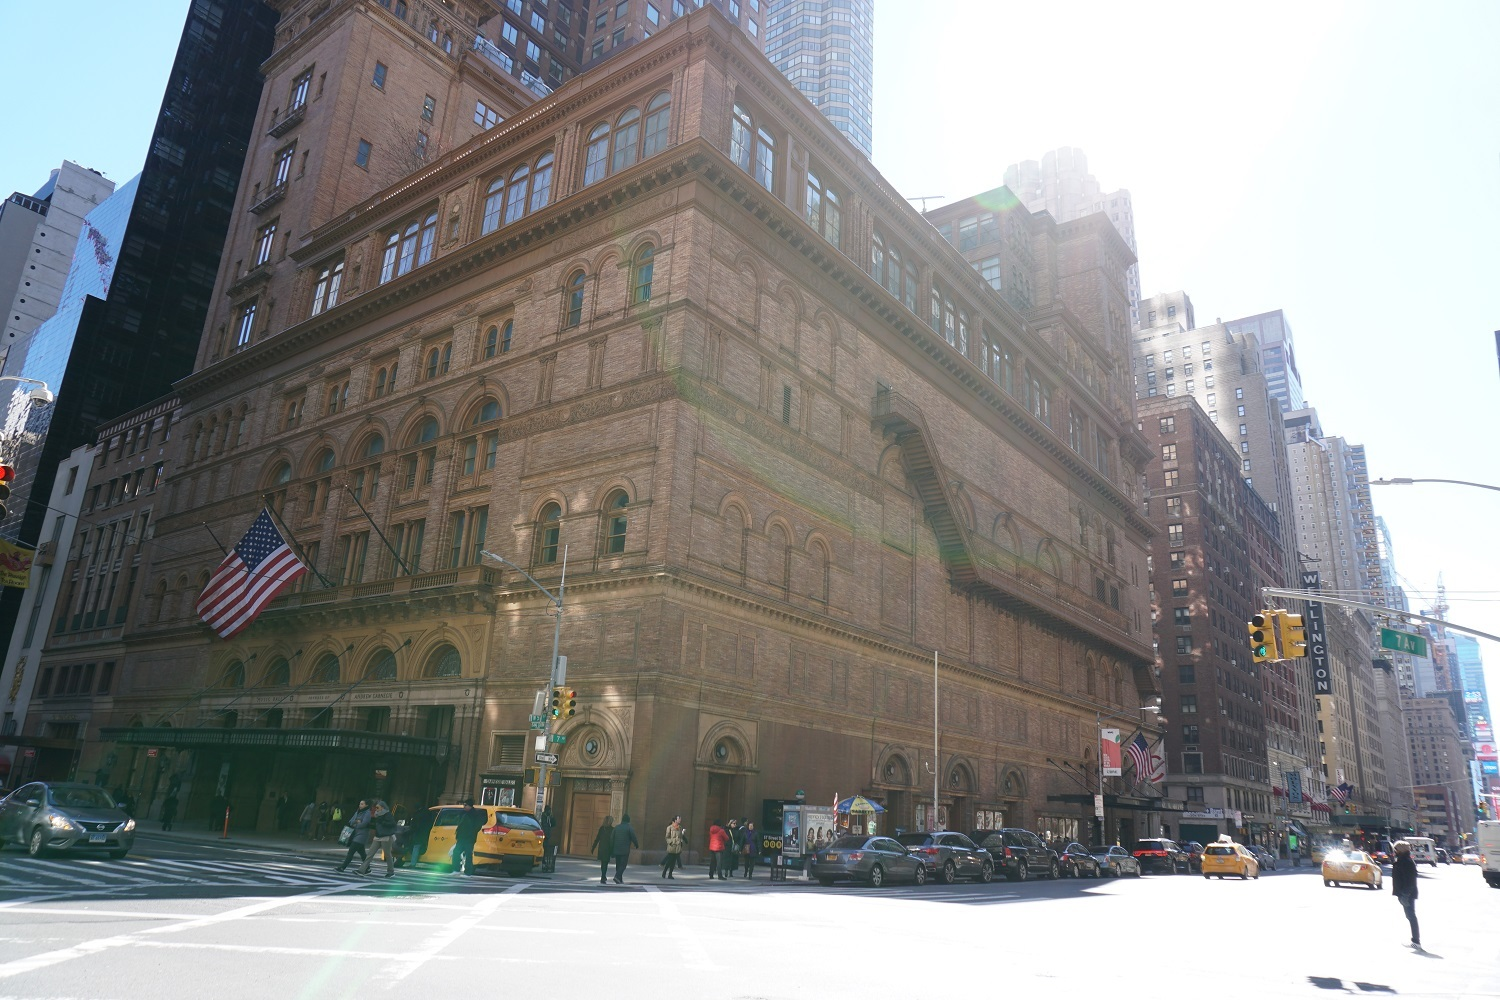 Building next to Carnegie Hall